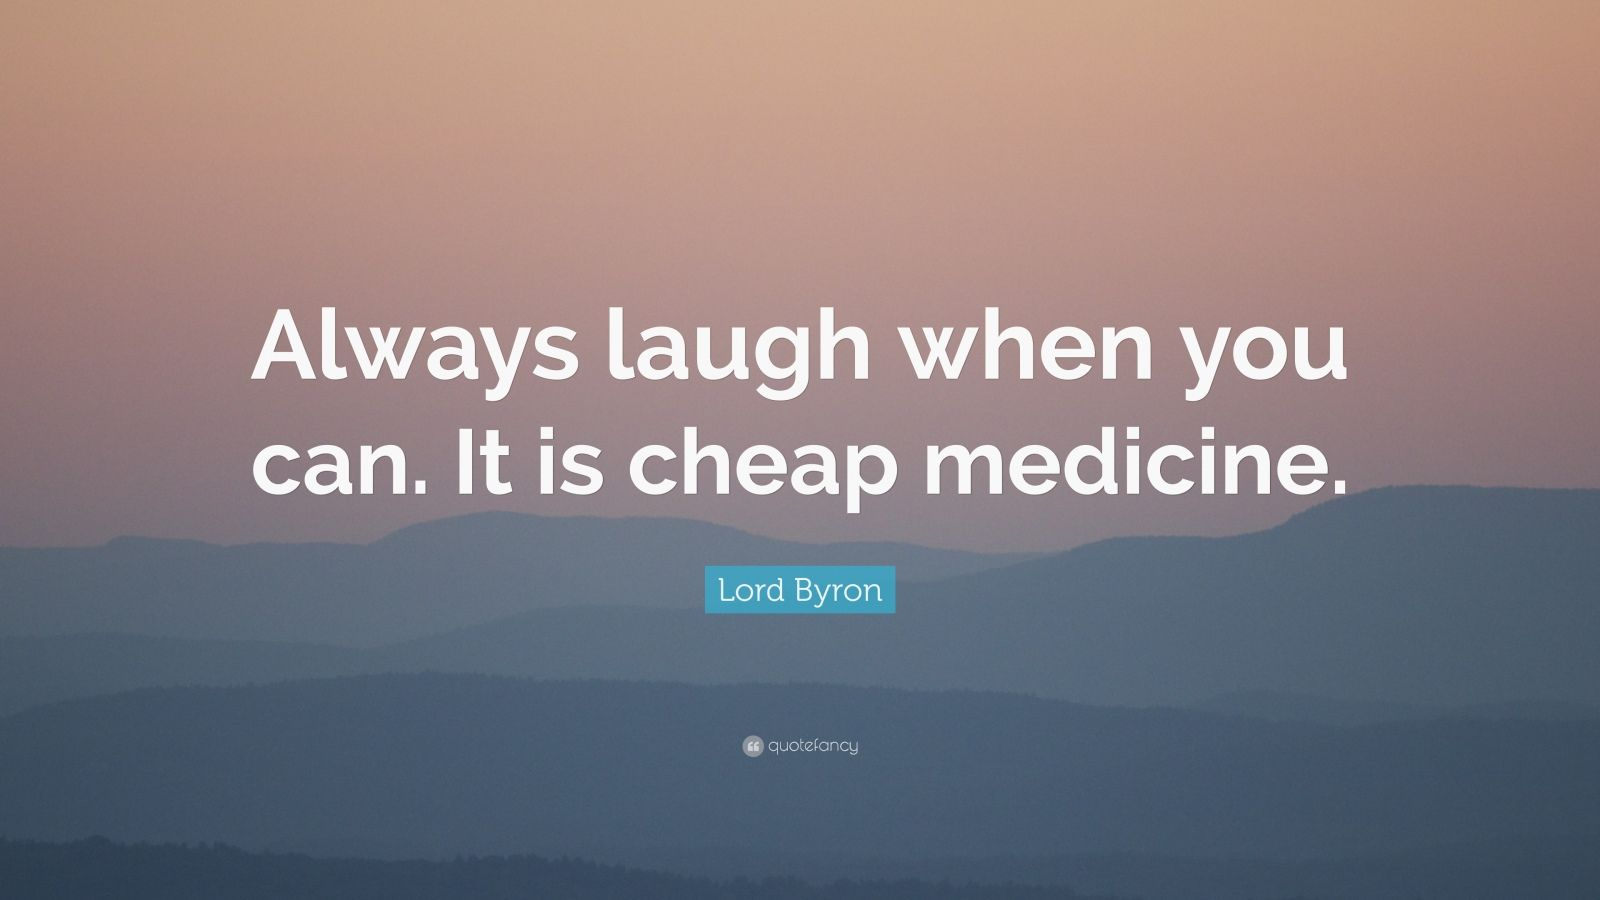 Friendship Love Wallpapers With Quotes Lord Byron Quote Always Laugh When You Can It Is Cheap